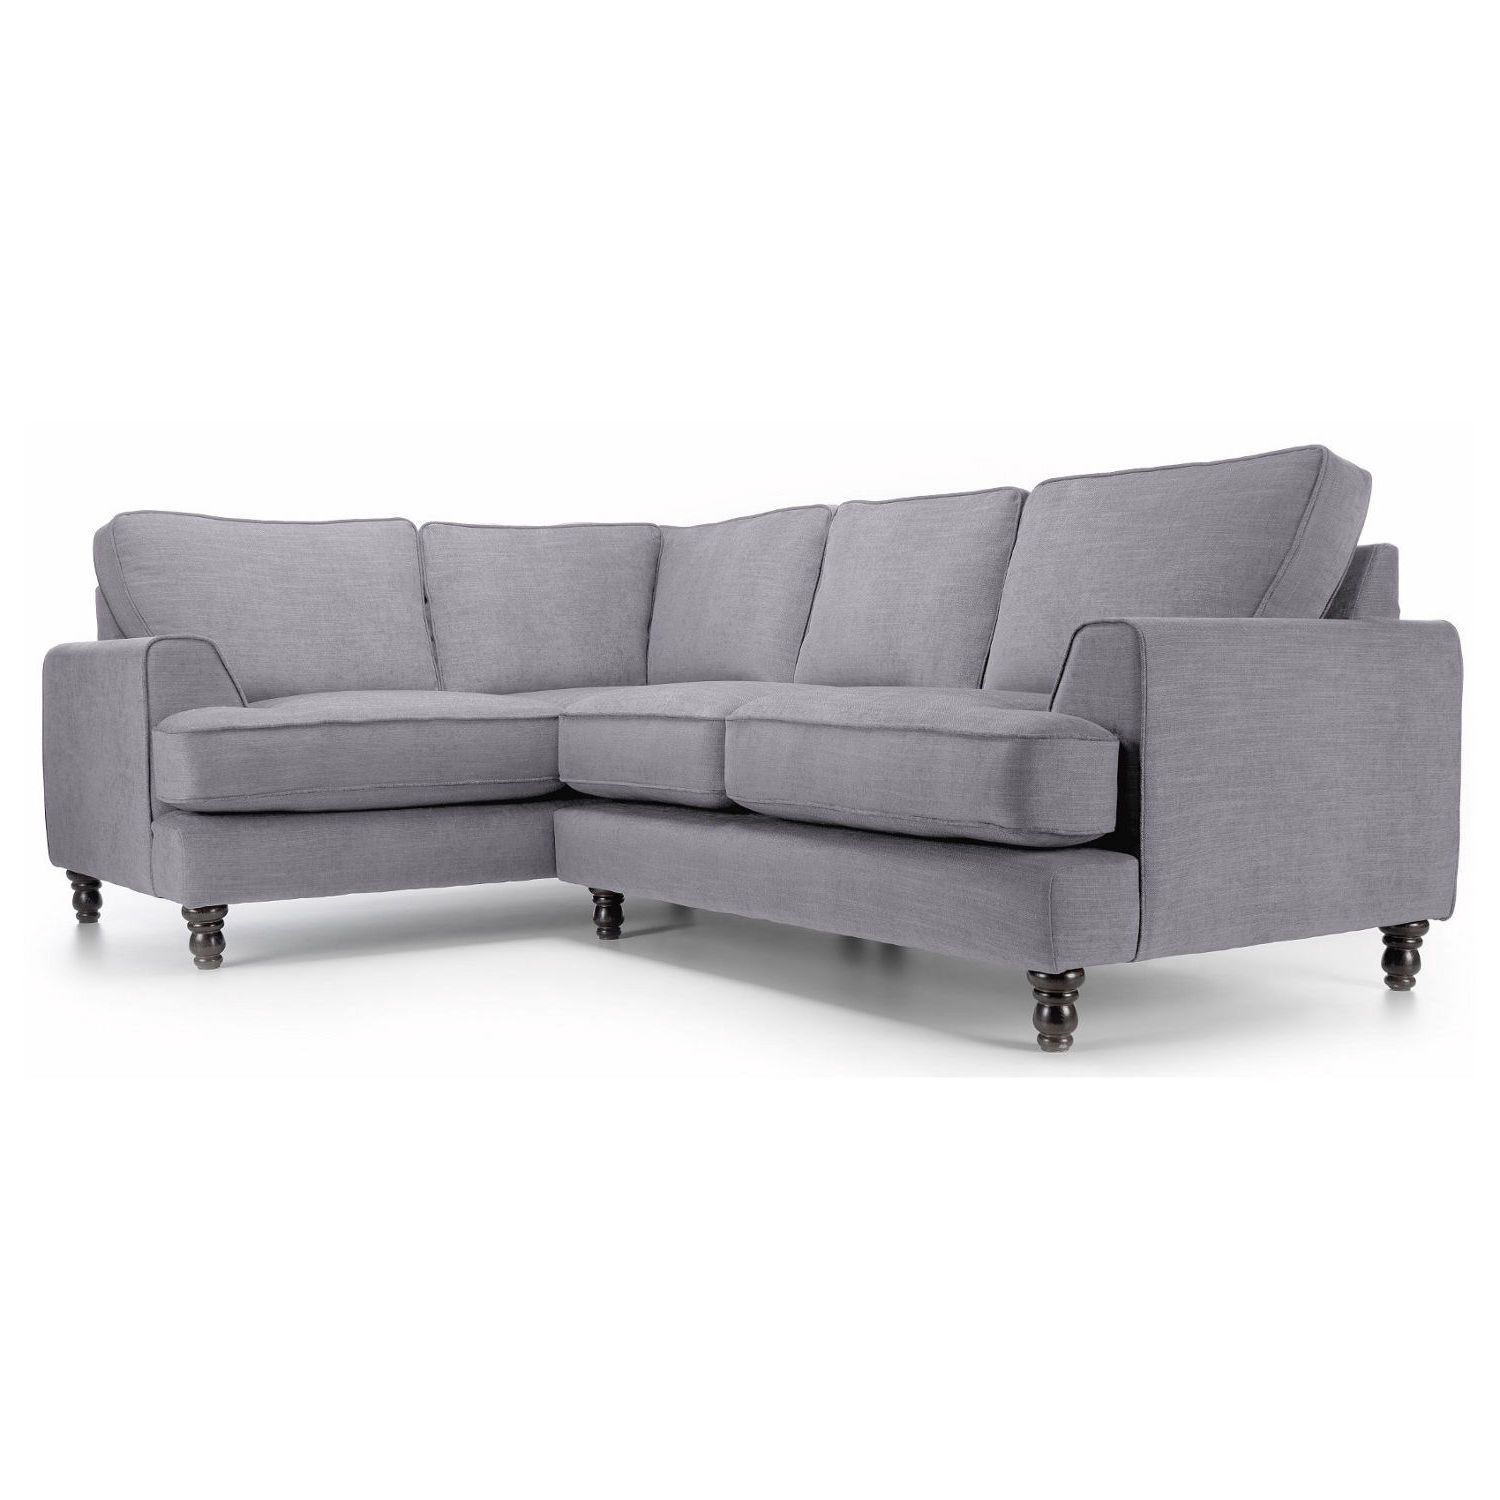 Elena Corner Sofa A Cheap Sofa Sets Corner Sofa Next Upholstered Sofa